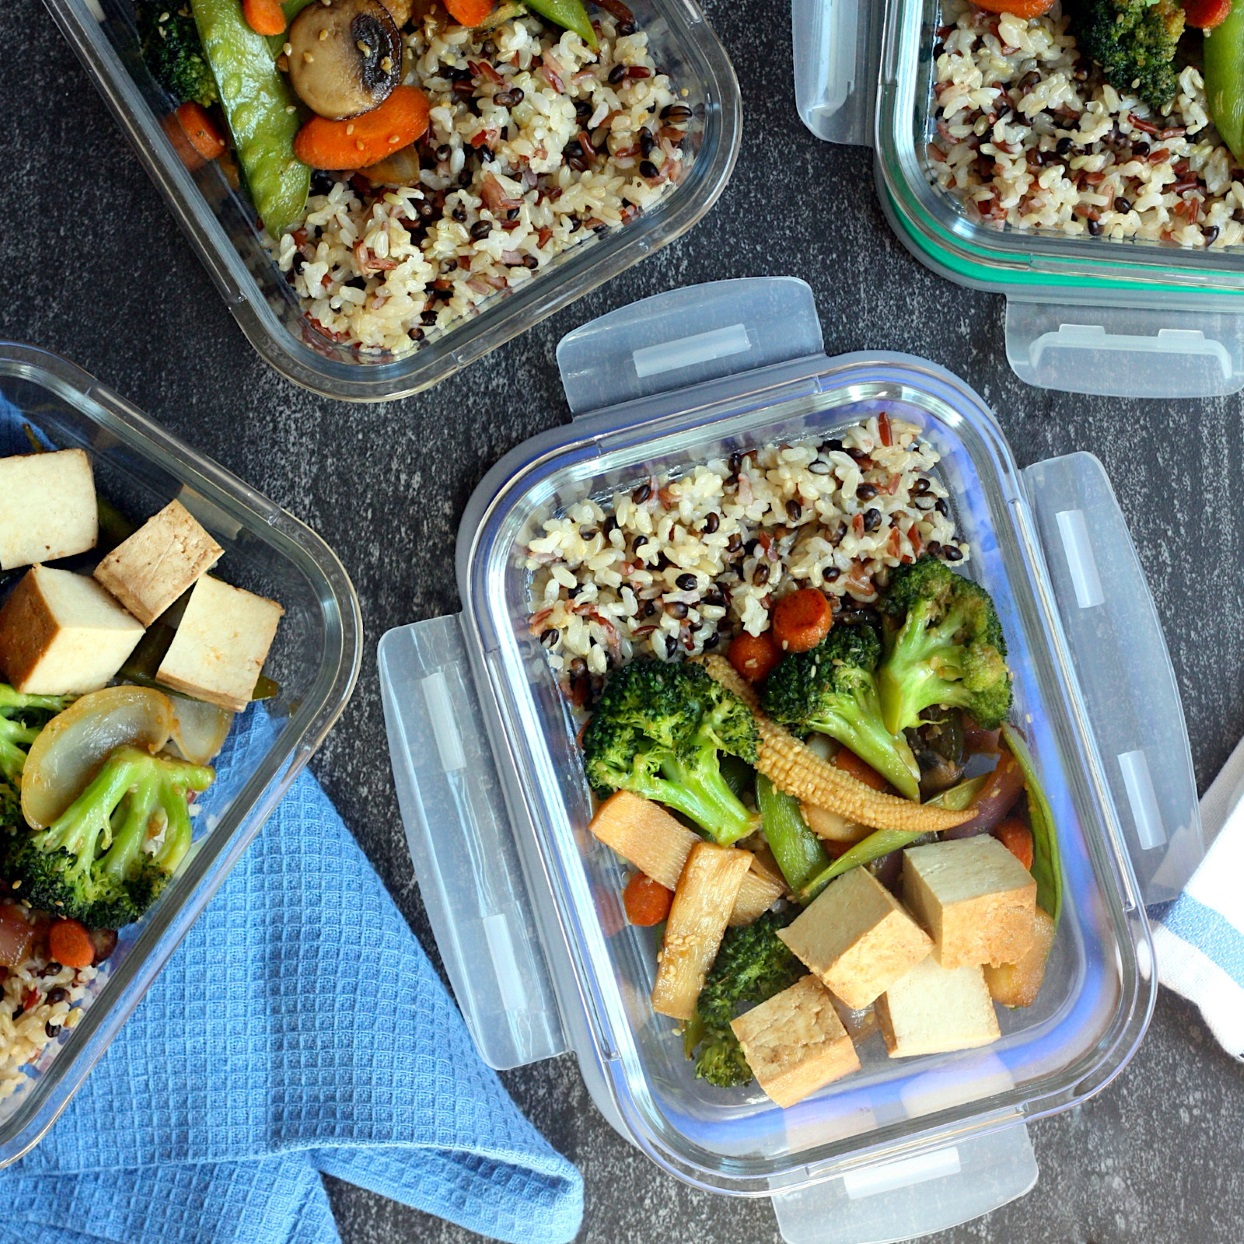 With a handful of shortcut ingredients from your local specialty grocery store, you can prepare an entire week's worth of high-fiber meals in about 15 minutes. Look for precooked wild rice packets to cut down on prep time. Plus, wild rice is a good source of fiber and each pouch of cooked rice heats in 3 minutes. Topping these bowls with prebaked tofu also cuts down on the time it takes to make this quick meal-prep lunch. Source: EatingWell.com, December 2019